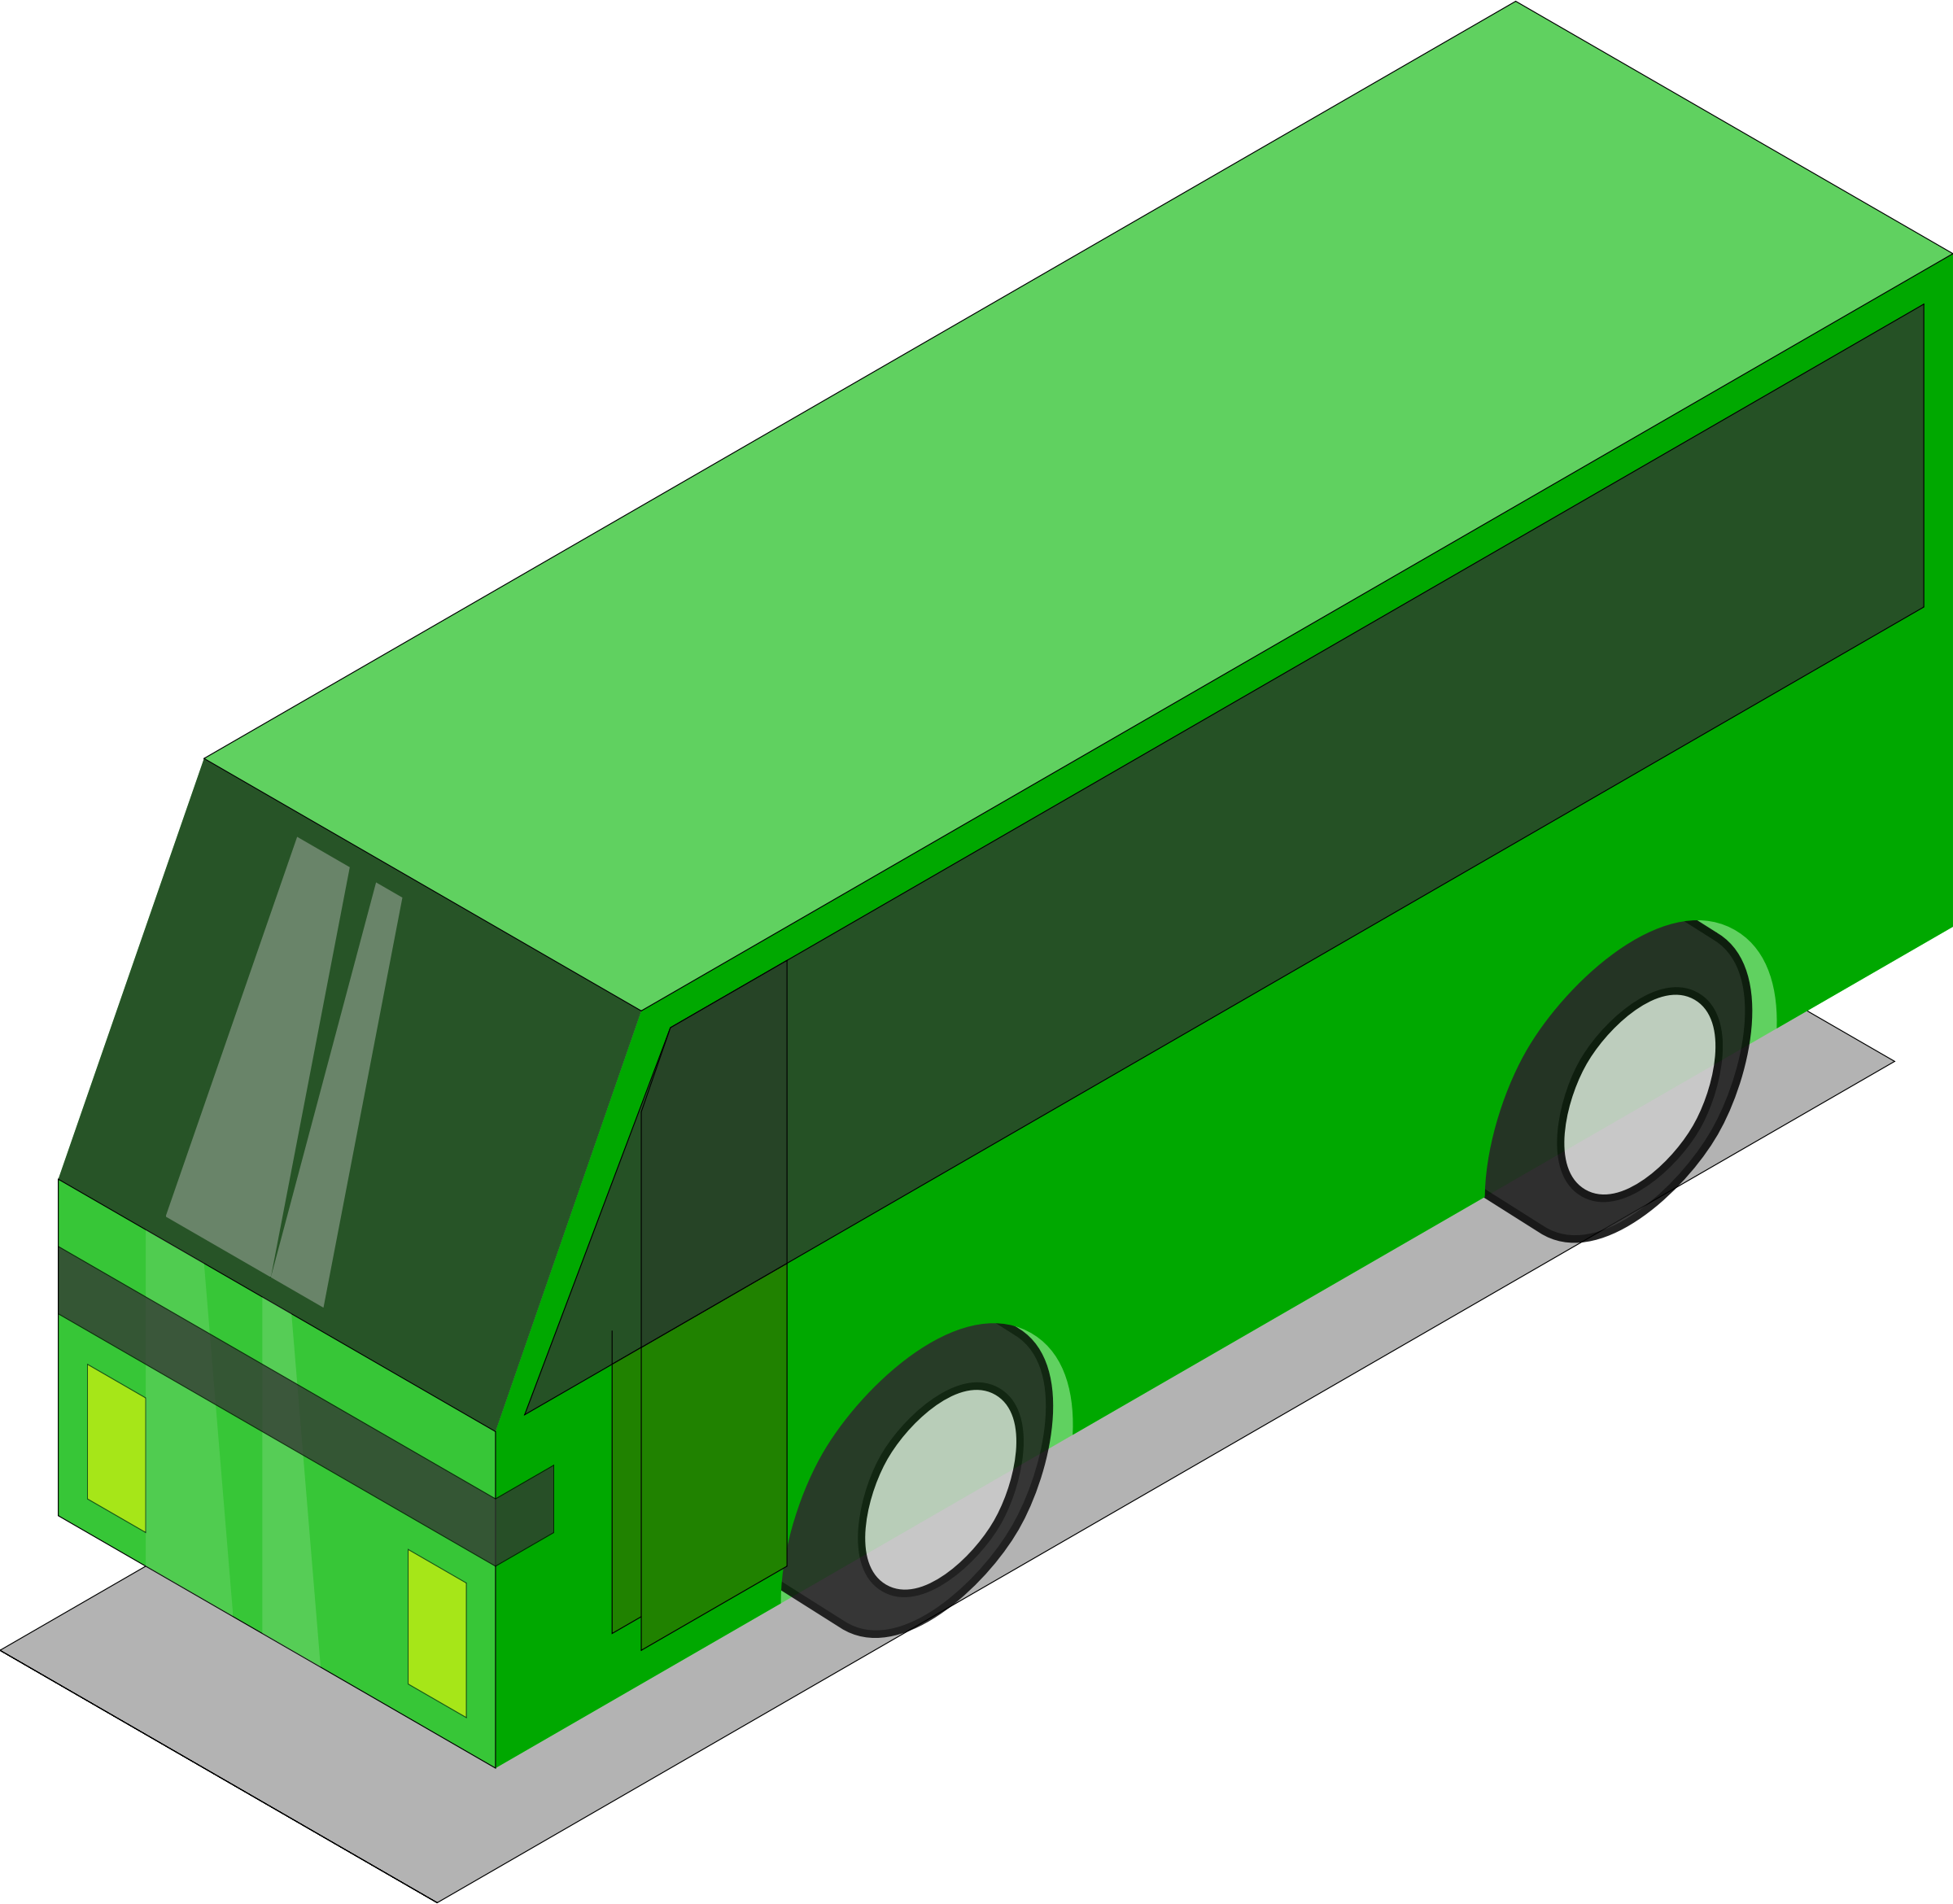 Bus car clipart png free Clipart - Green bus png free